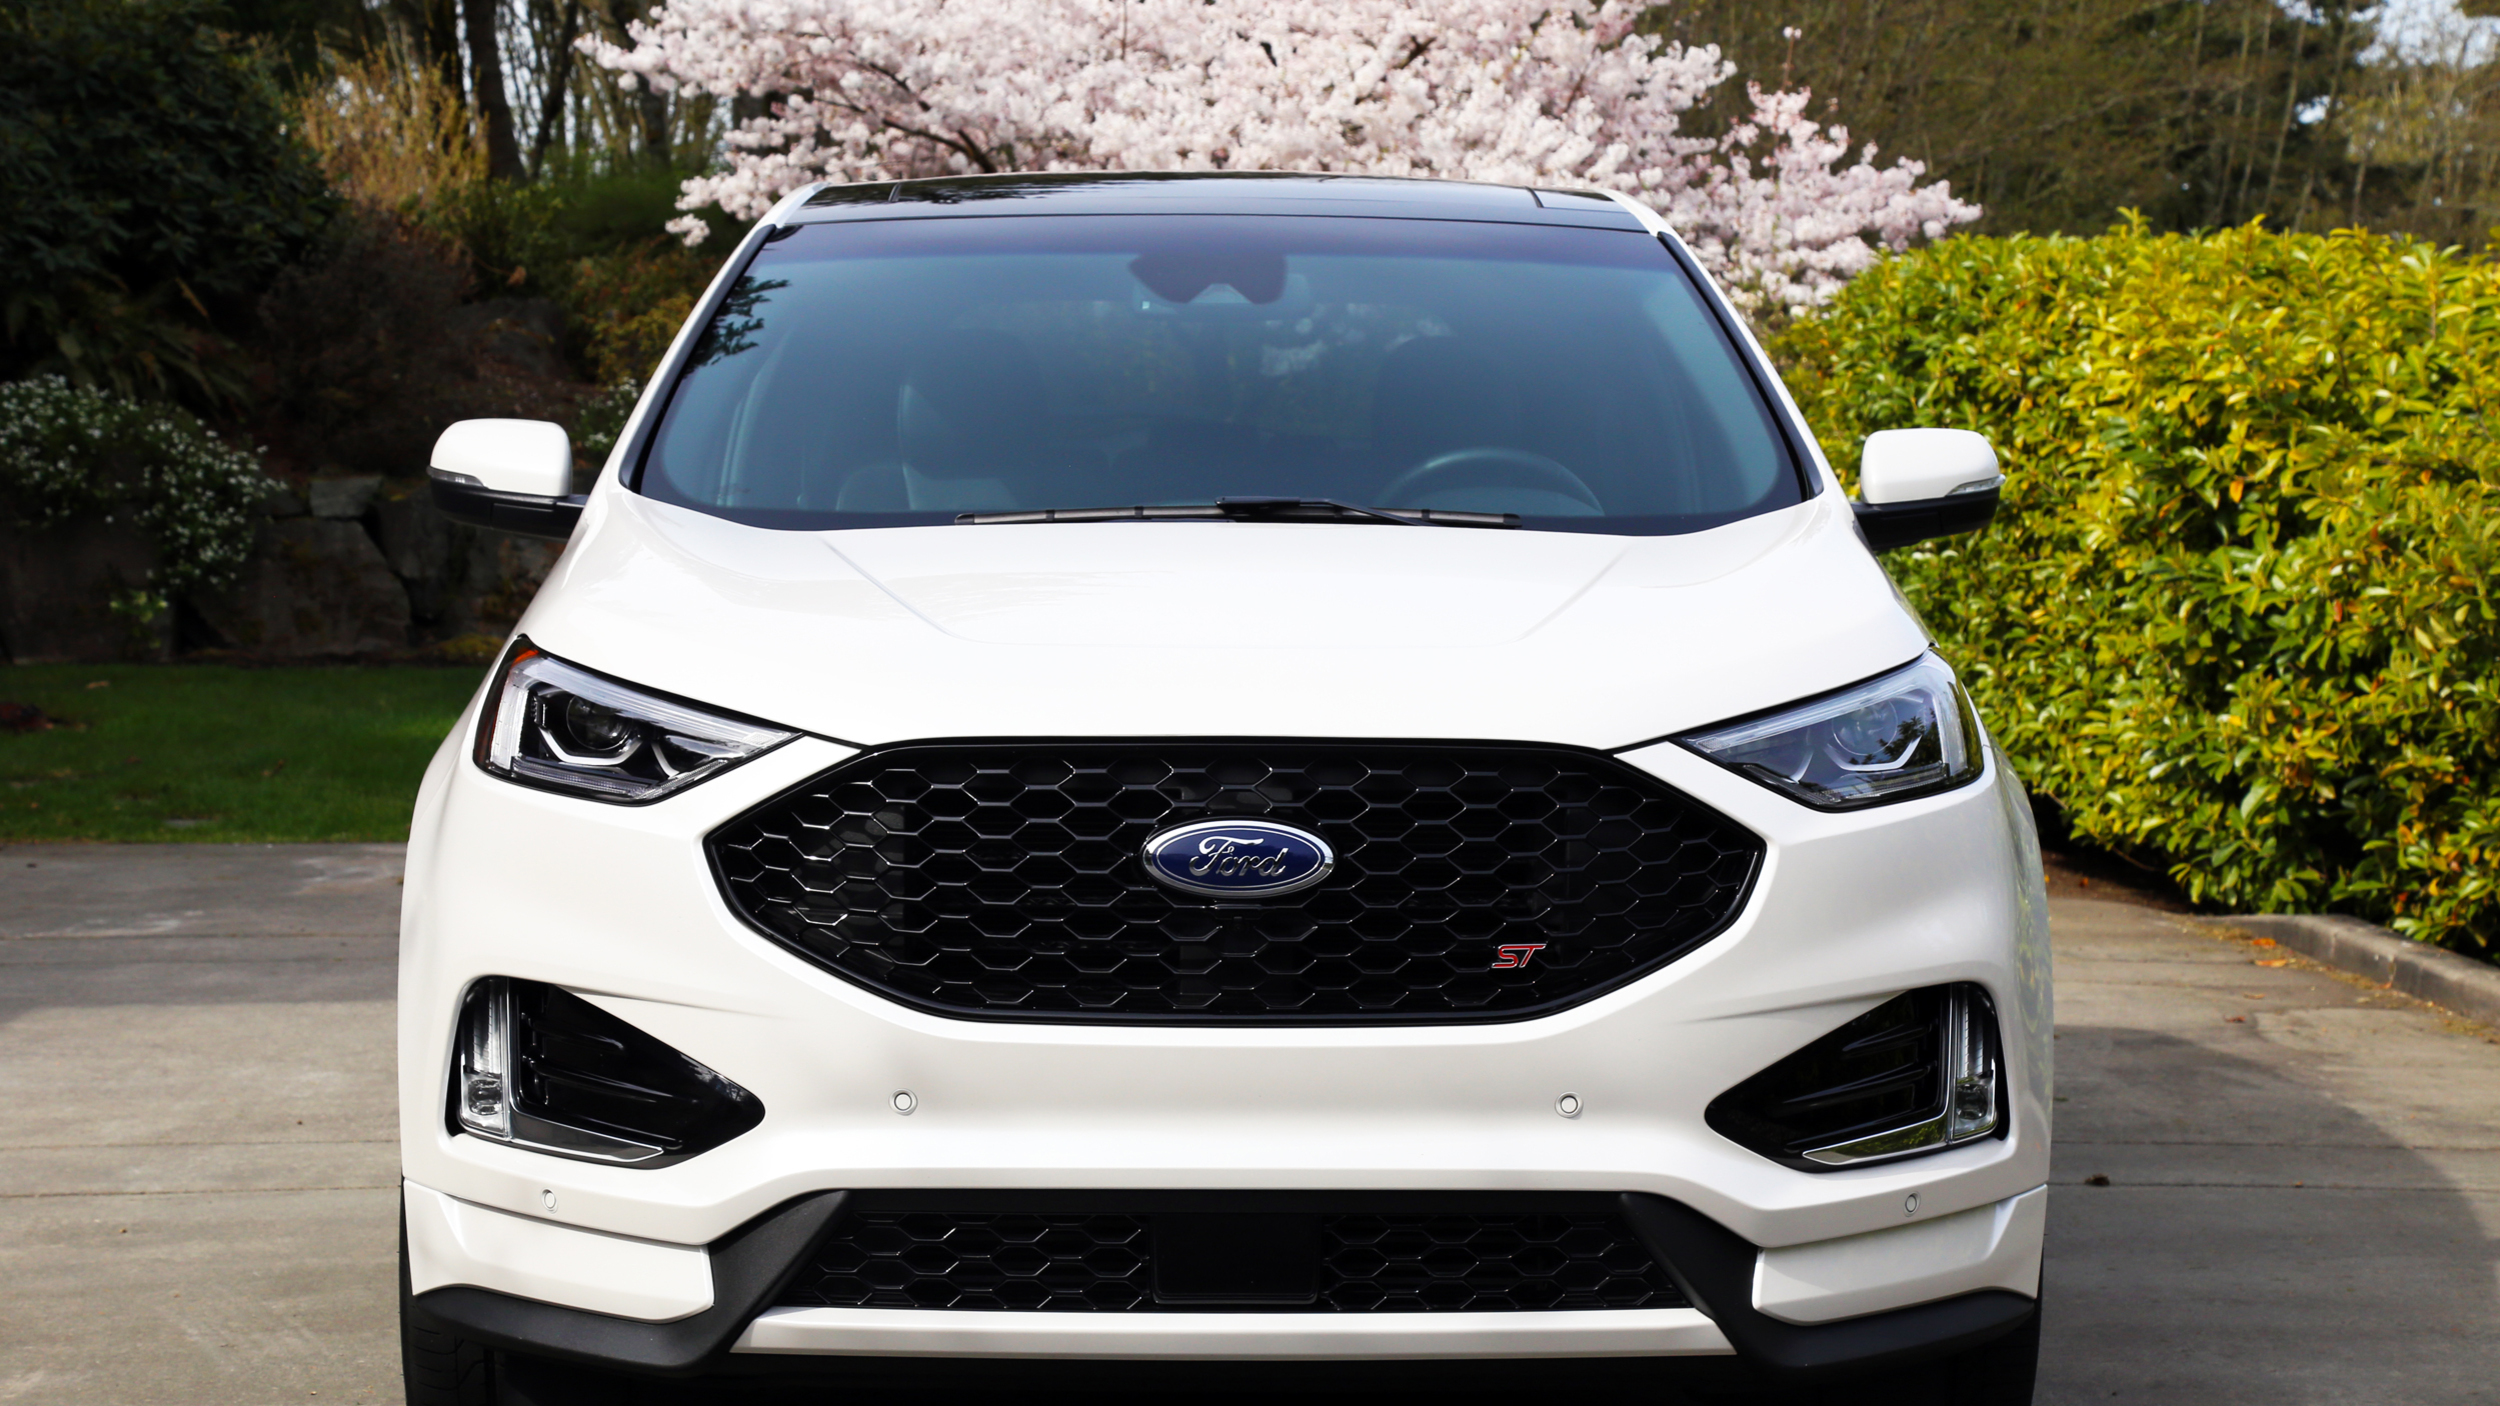 Ford Incentives For May 2020 | Chevy2020.Com